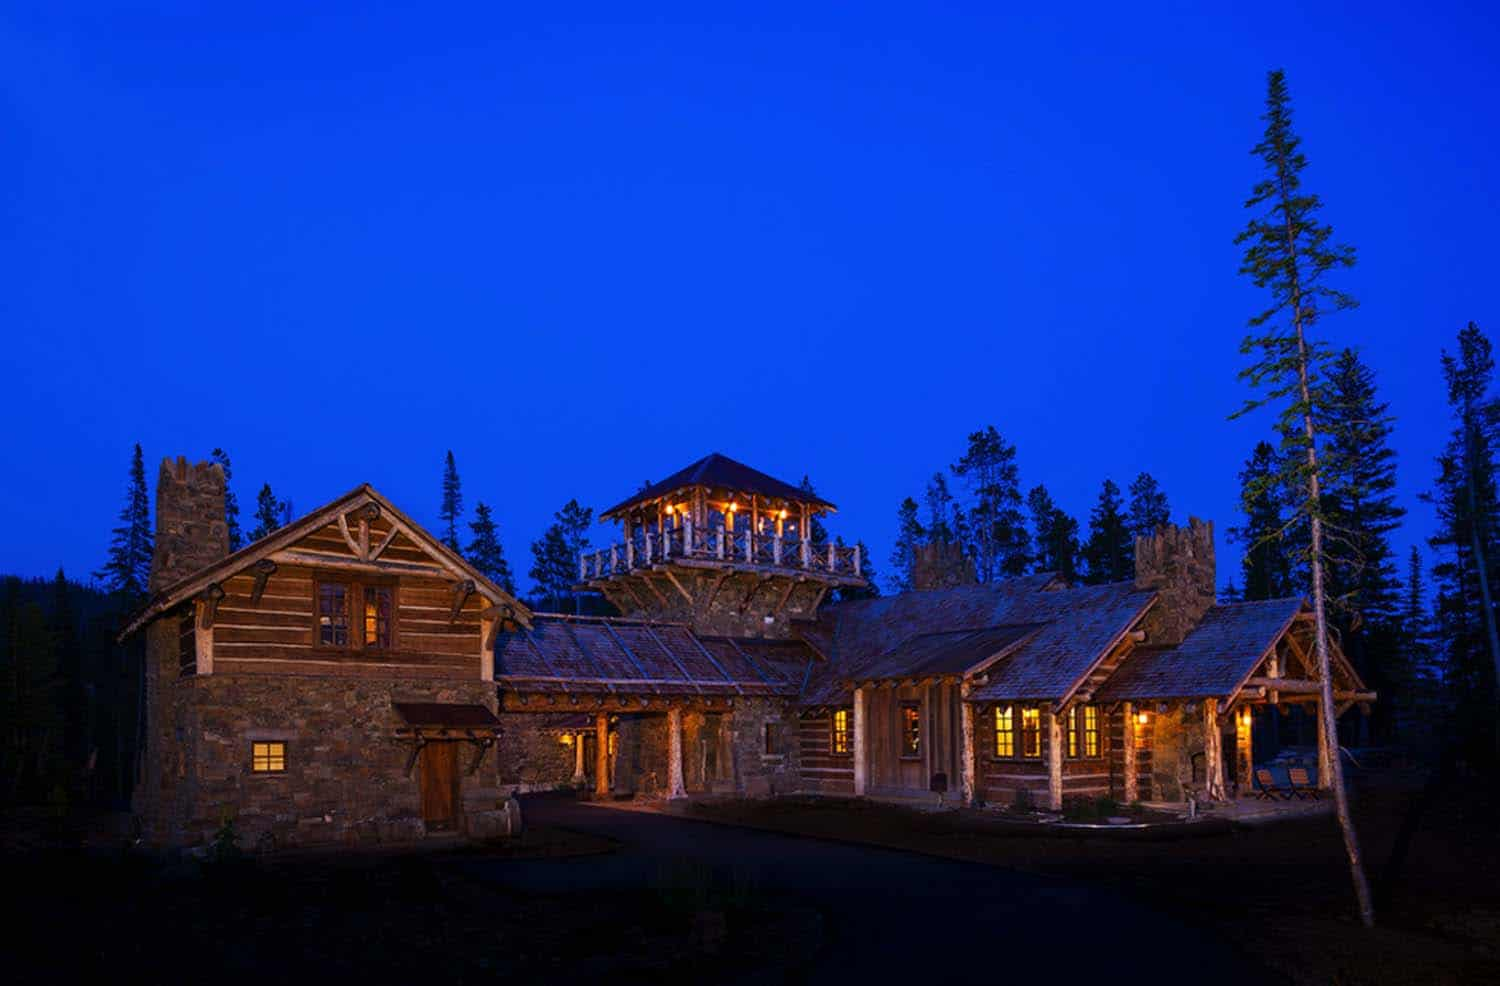 Rustic Log Home Design-Faure Halvorsen Architects-17-1 Kindesign